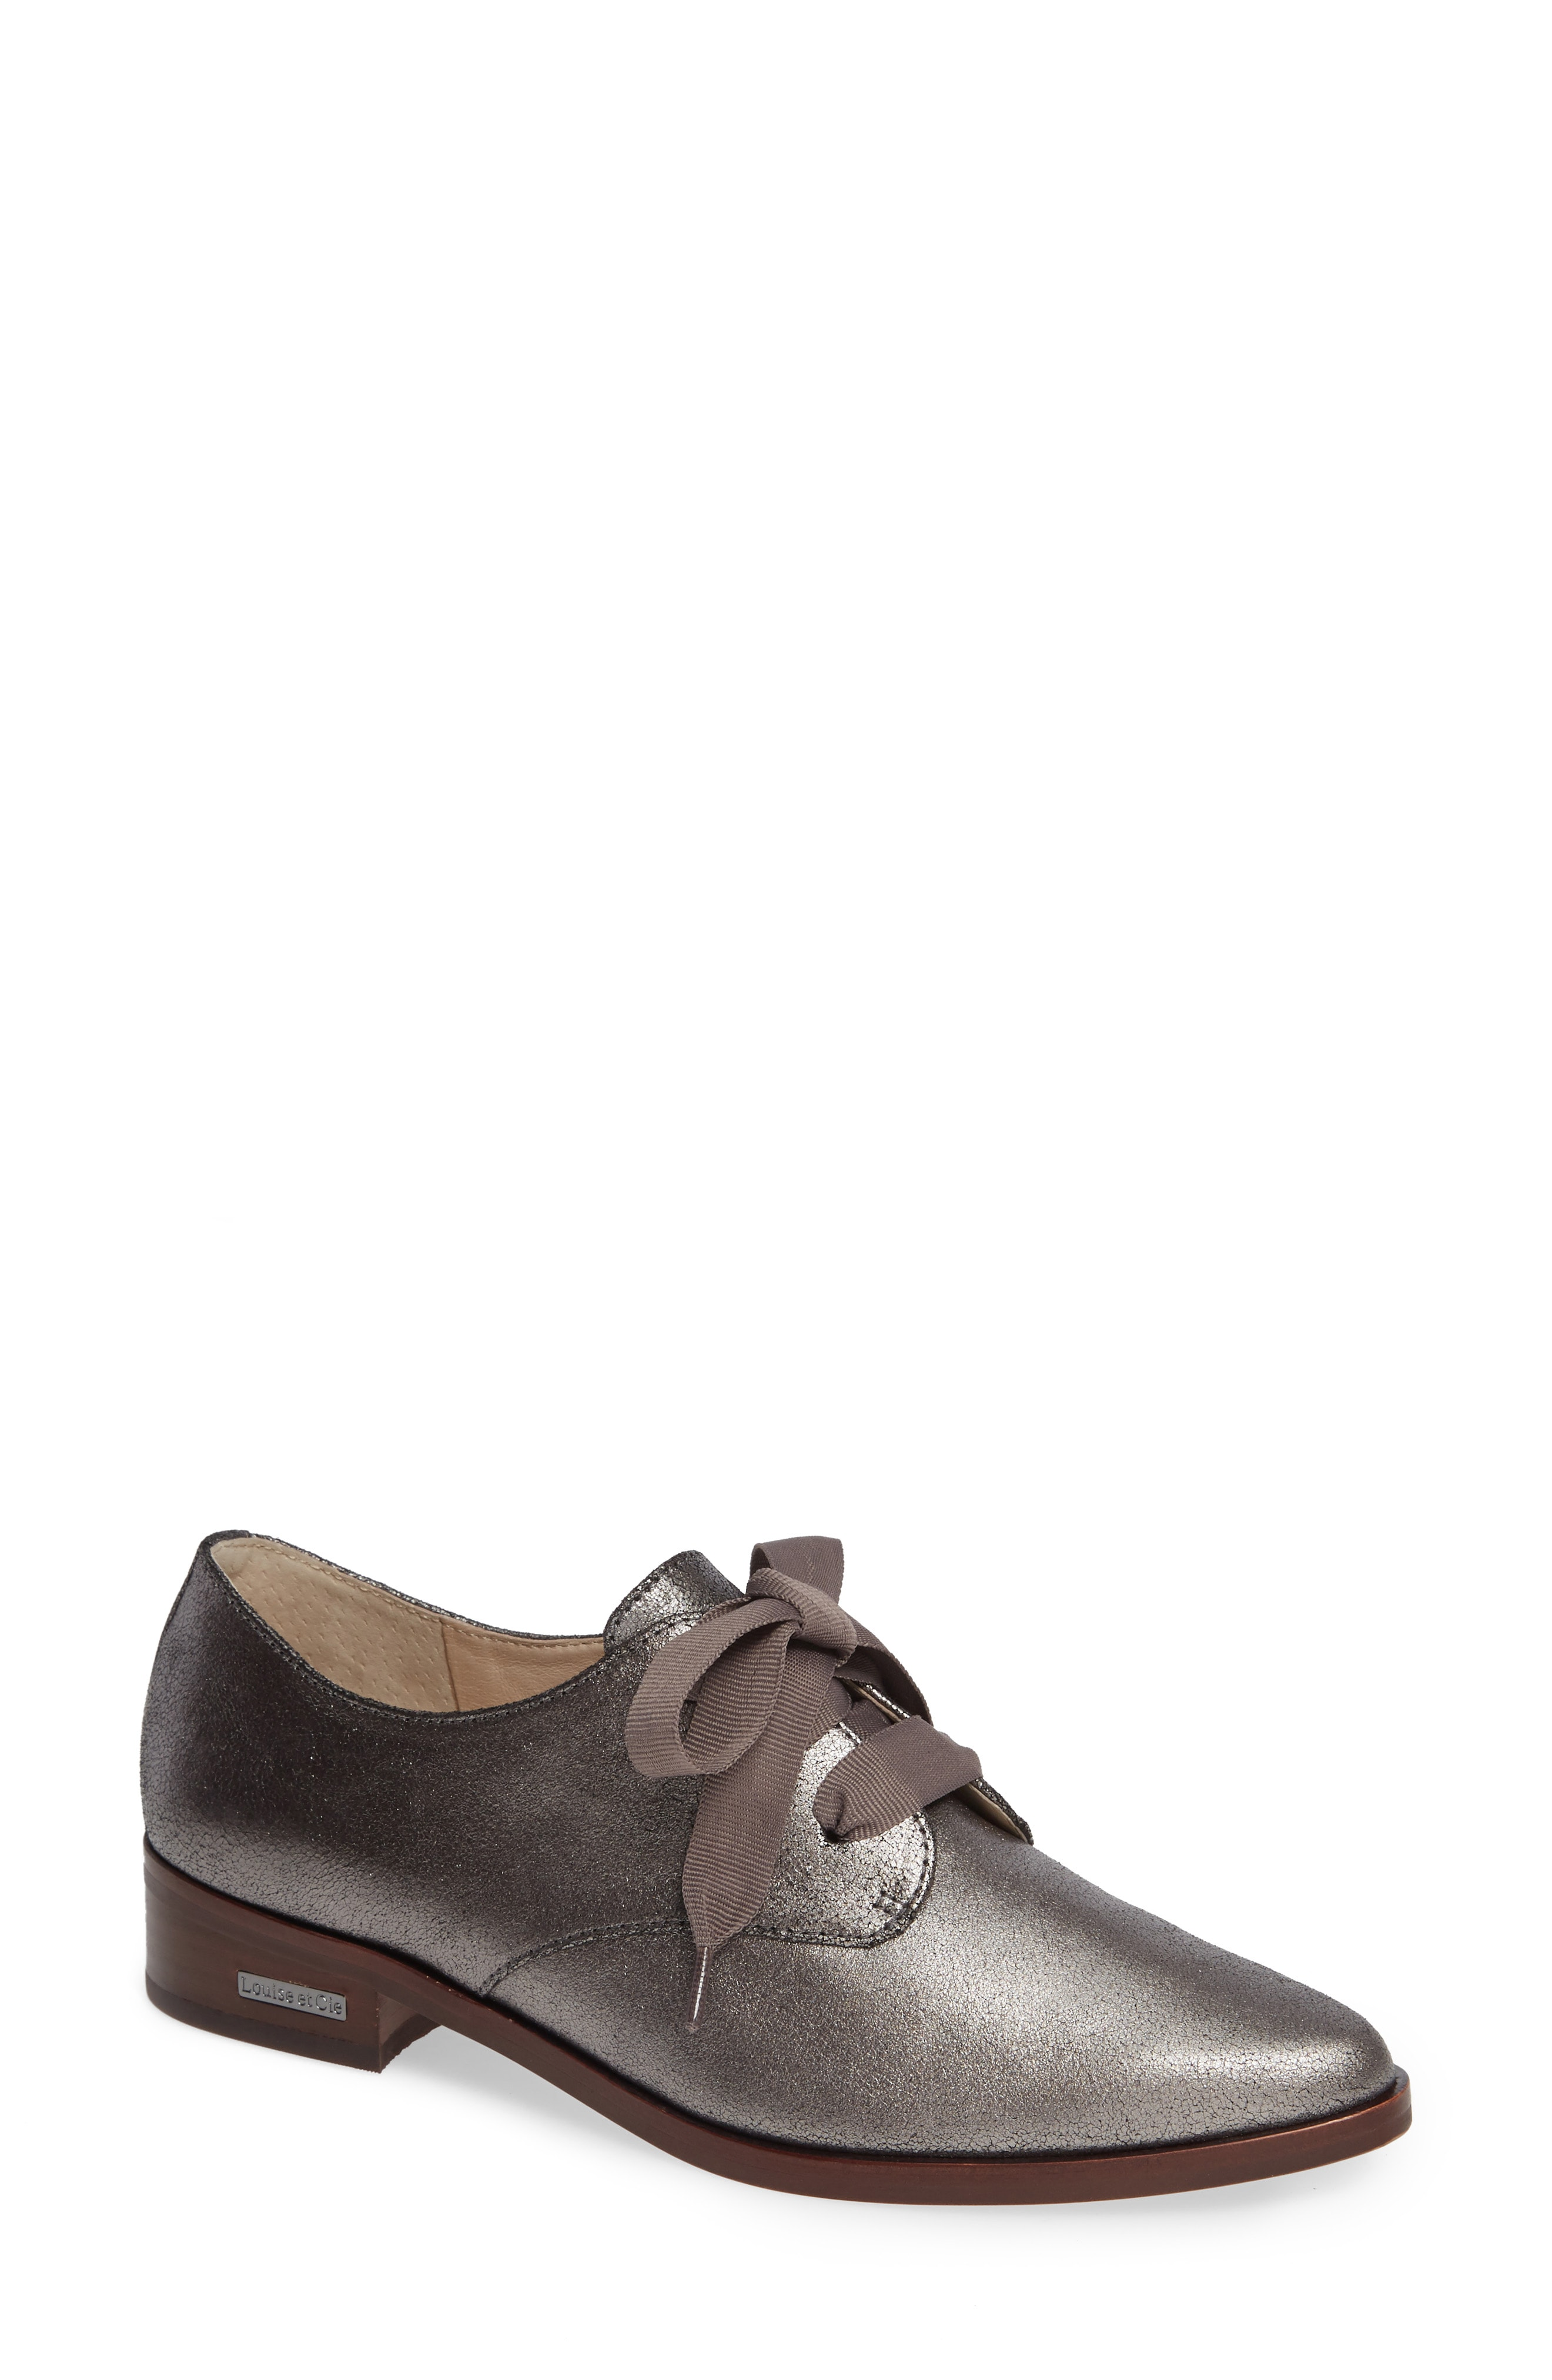 oxford shoes for women | Nordstrom